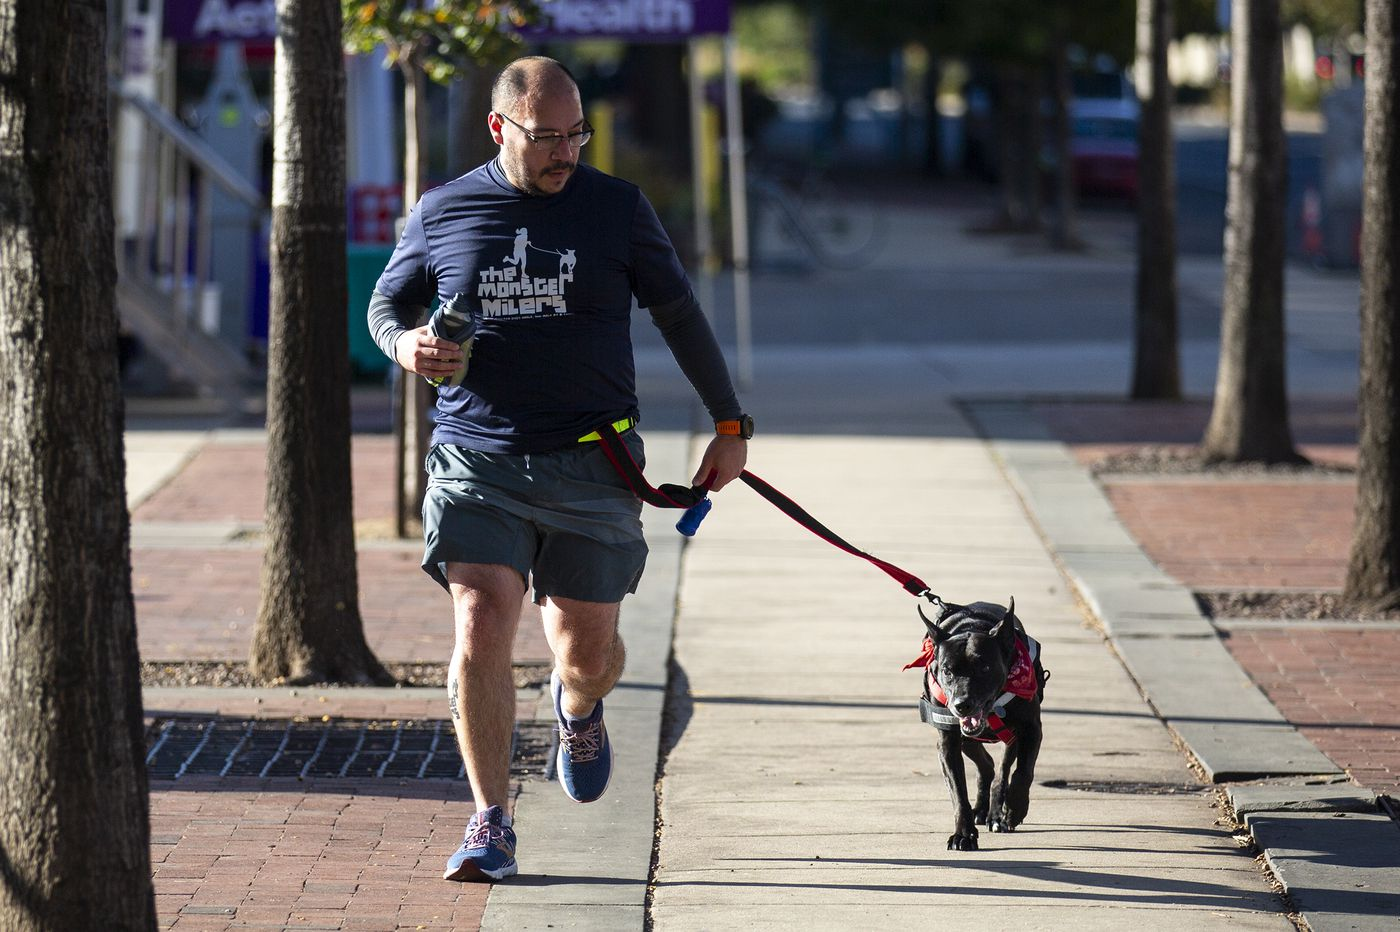 When the Monster Milers run with the dogs, they save lives